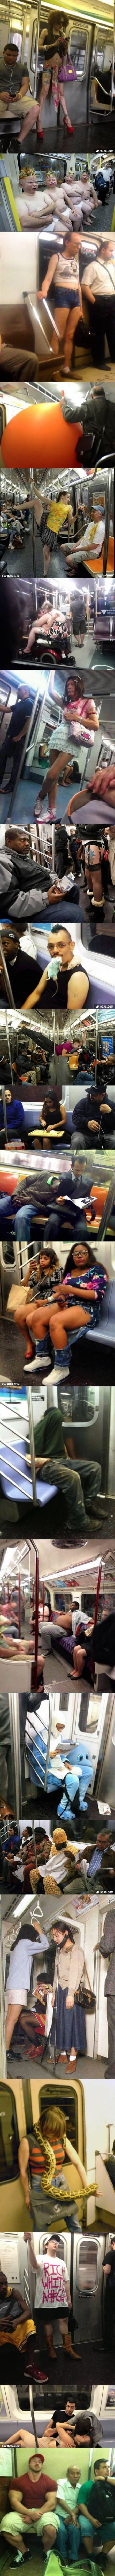 22 Photos That Show Why I Hate To Take The Subway!